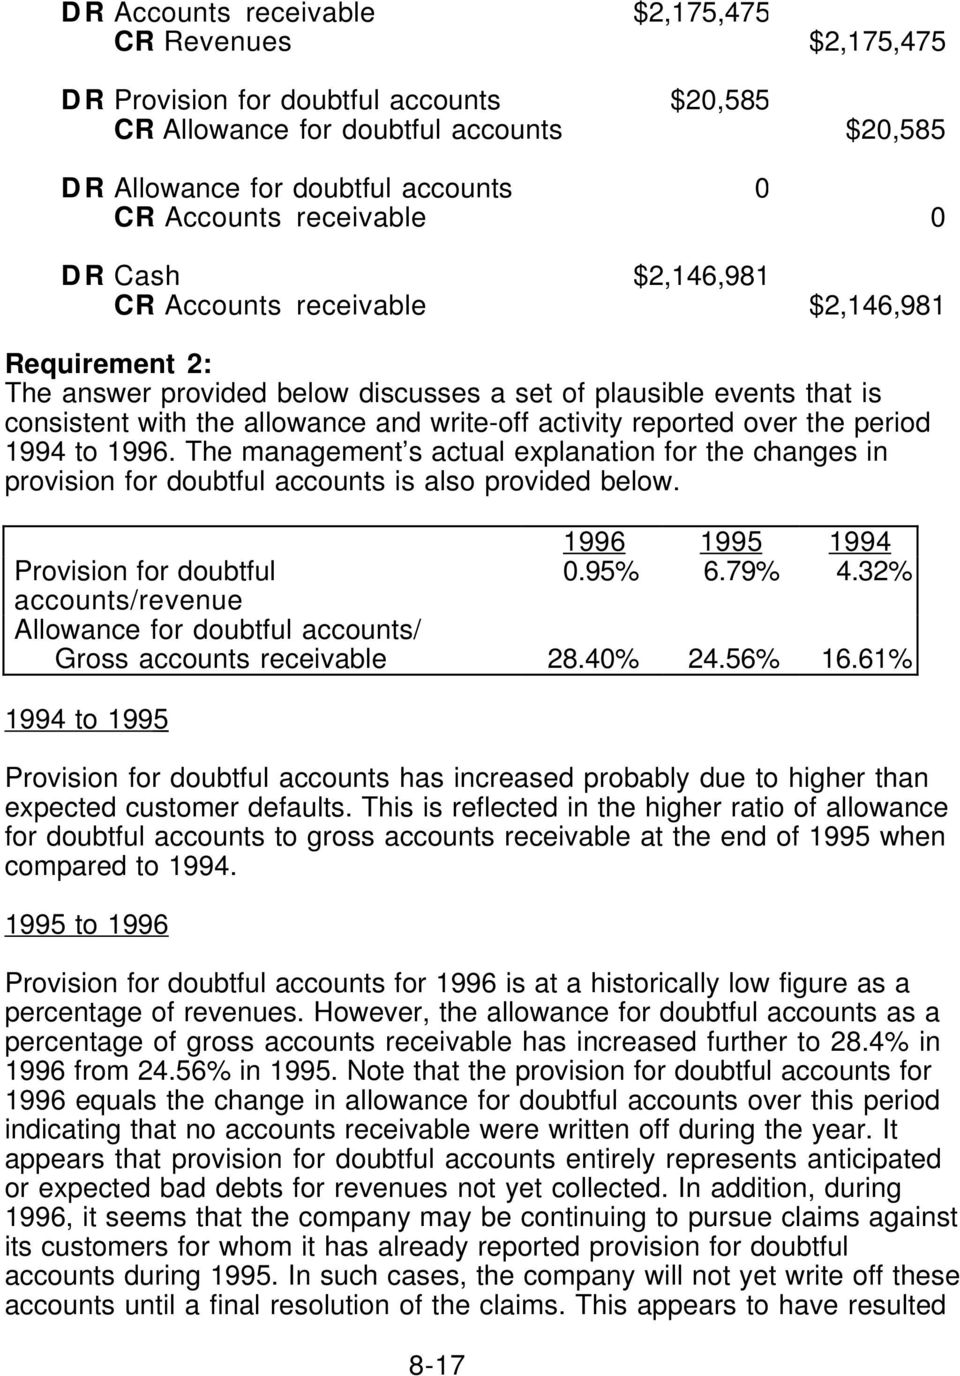 activity reported over the period 1994 to 1996. The management s actual explanation for the changes in provision for doubtful accounts is also provided below. 1996 1995 1994 Provision for doubtful 0.